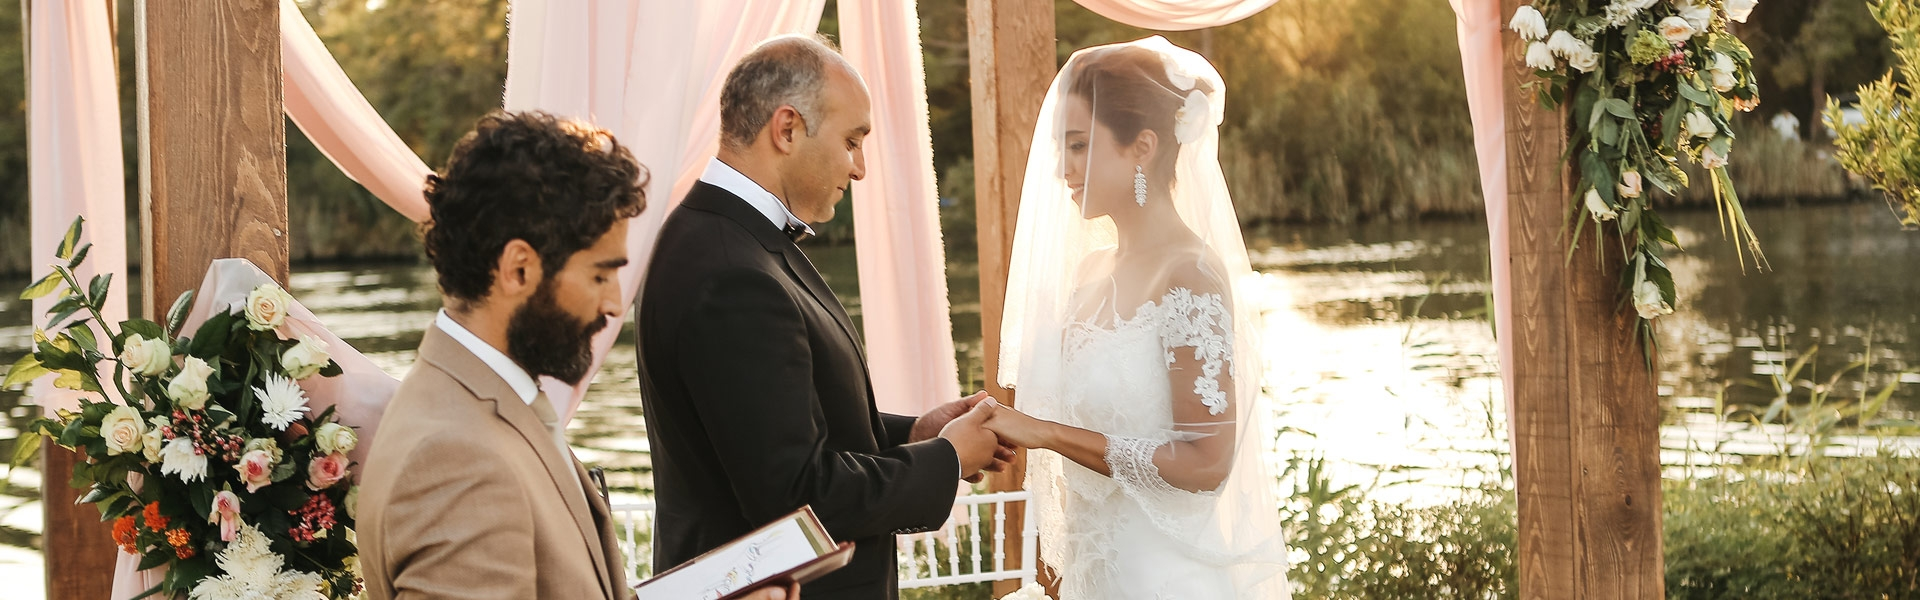 Turkey Wedding Organizations